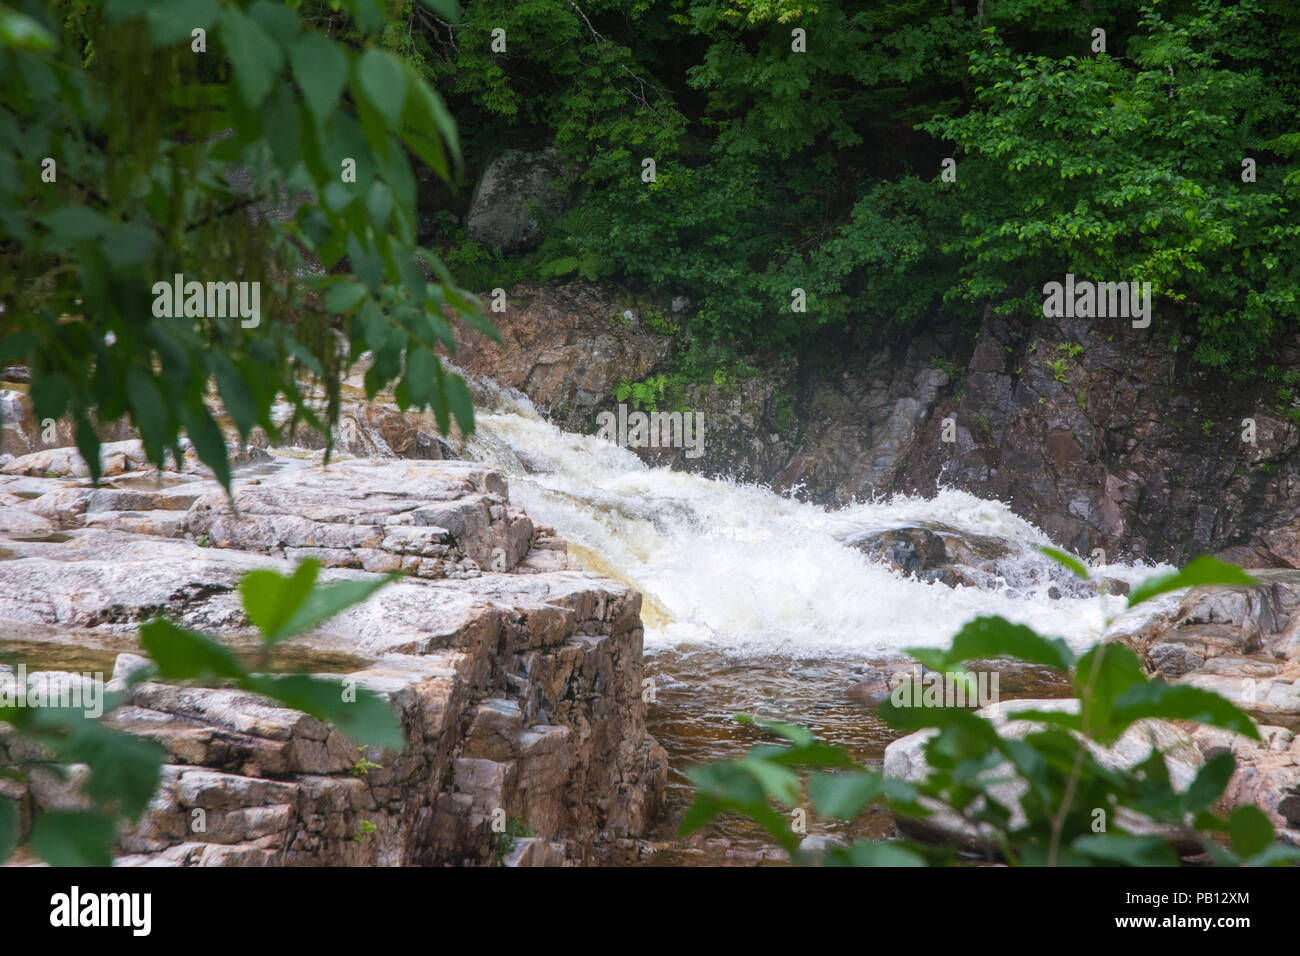 Middle os rushing stream is action based. - Stock Image